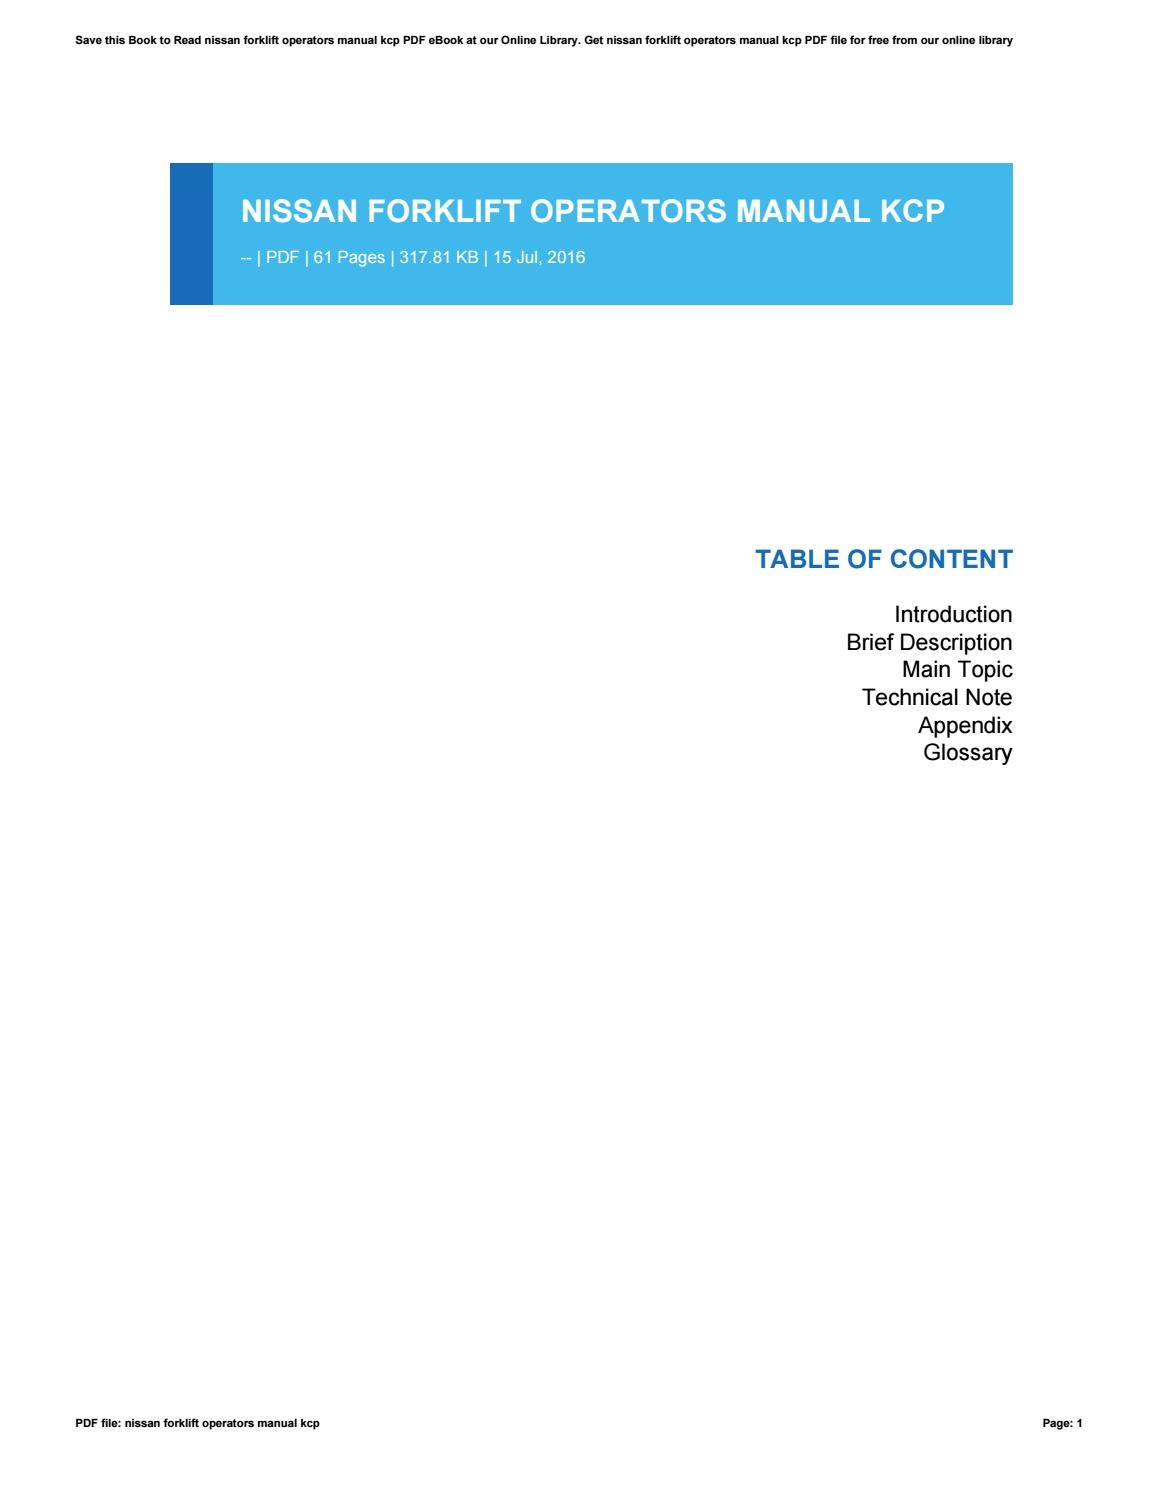 nissan forklift operators manual kcp by u025 issuu rh issuu com nissan electric forklift operators manual nissan forklift operators manual pdf